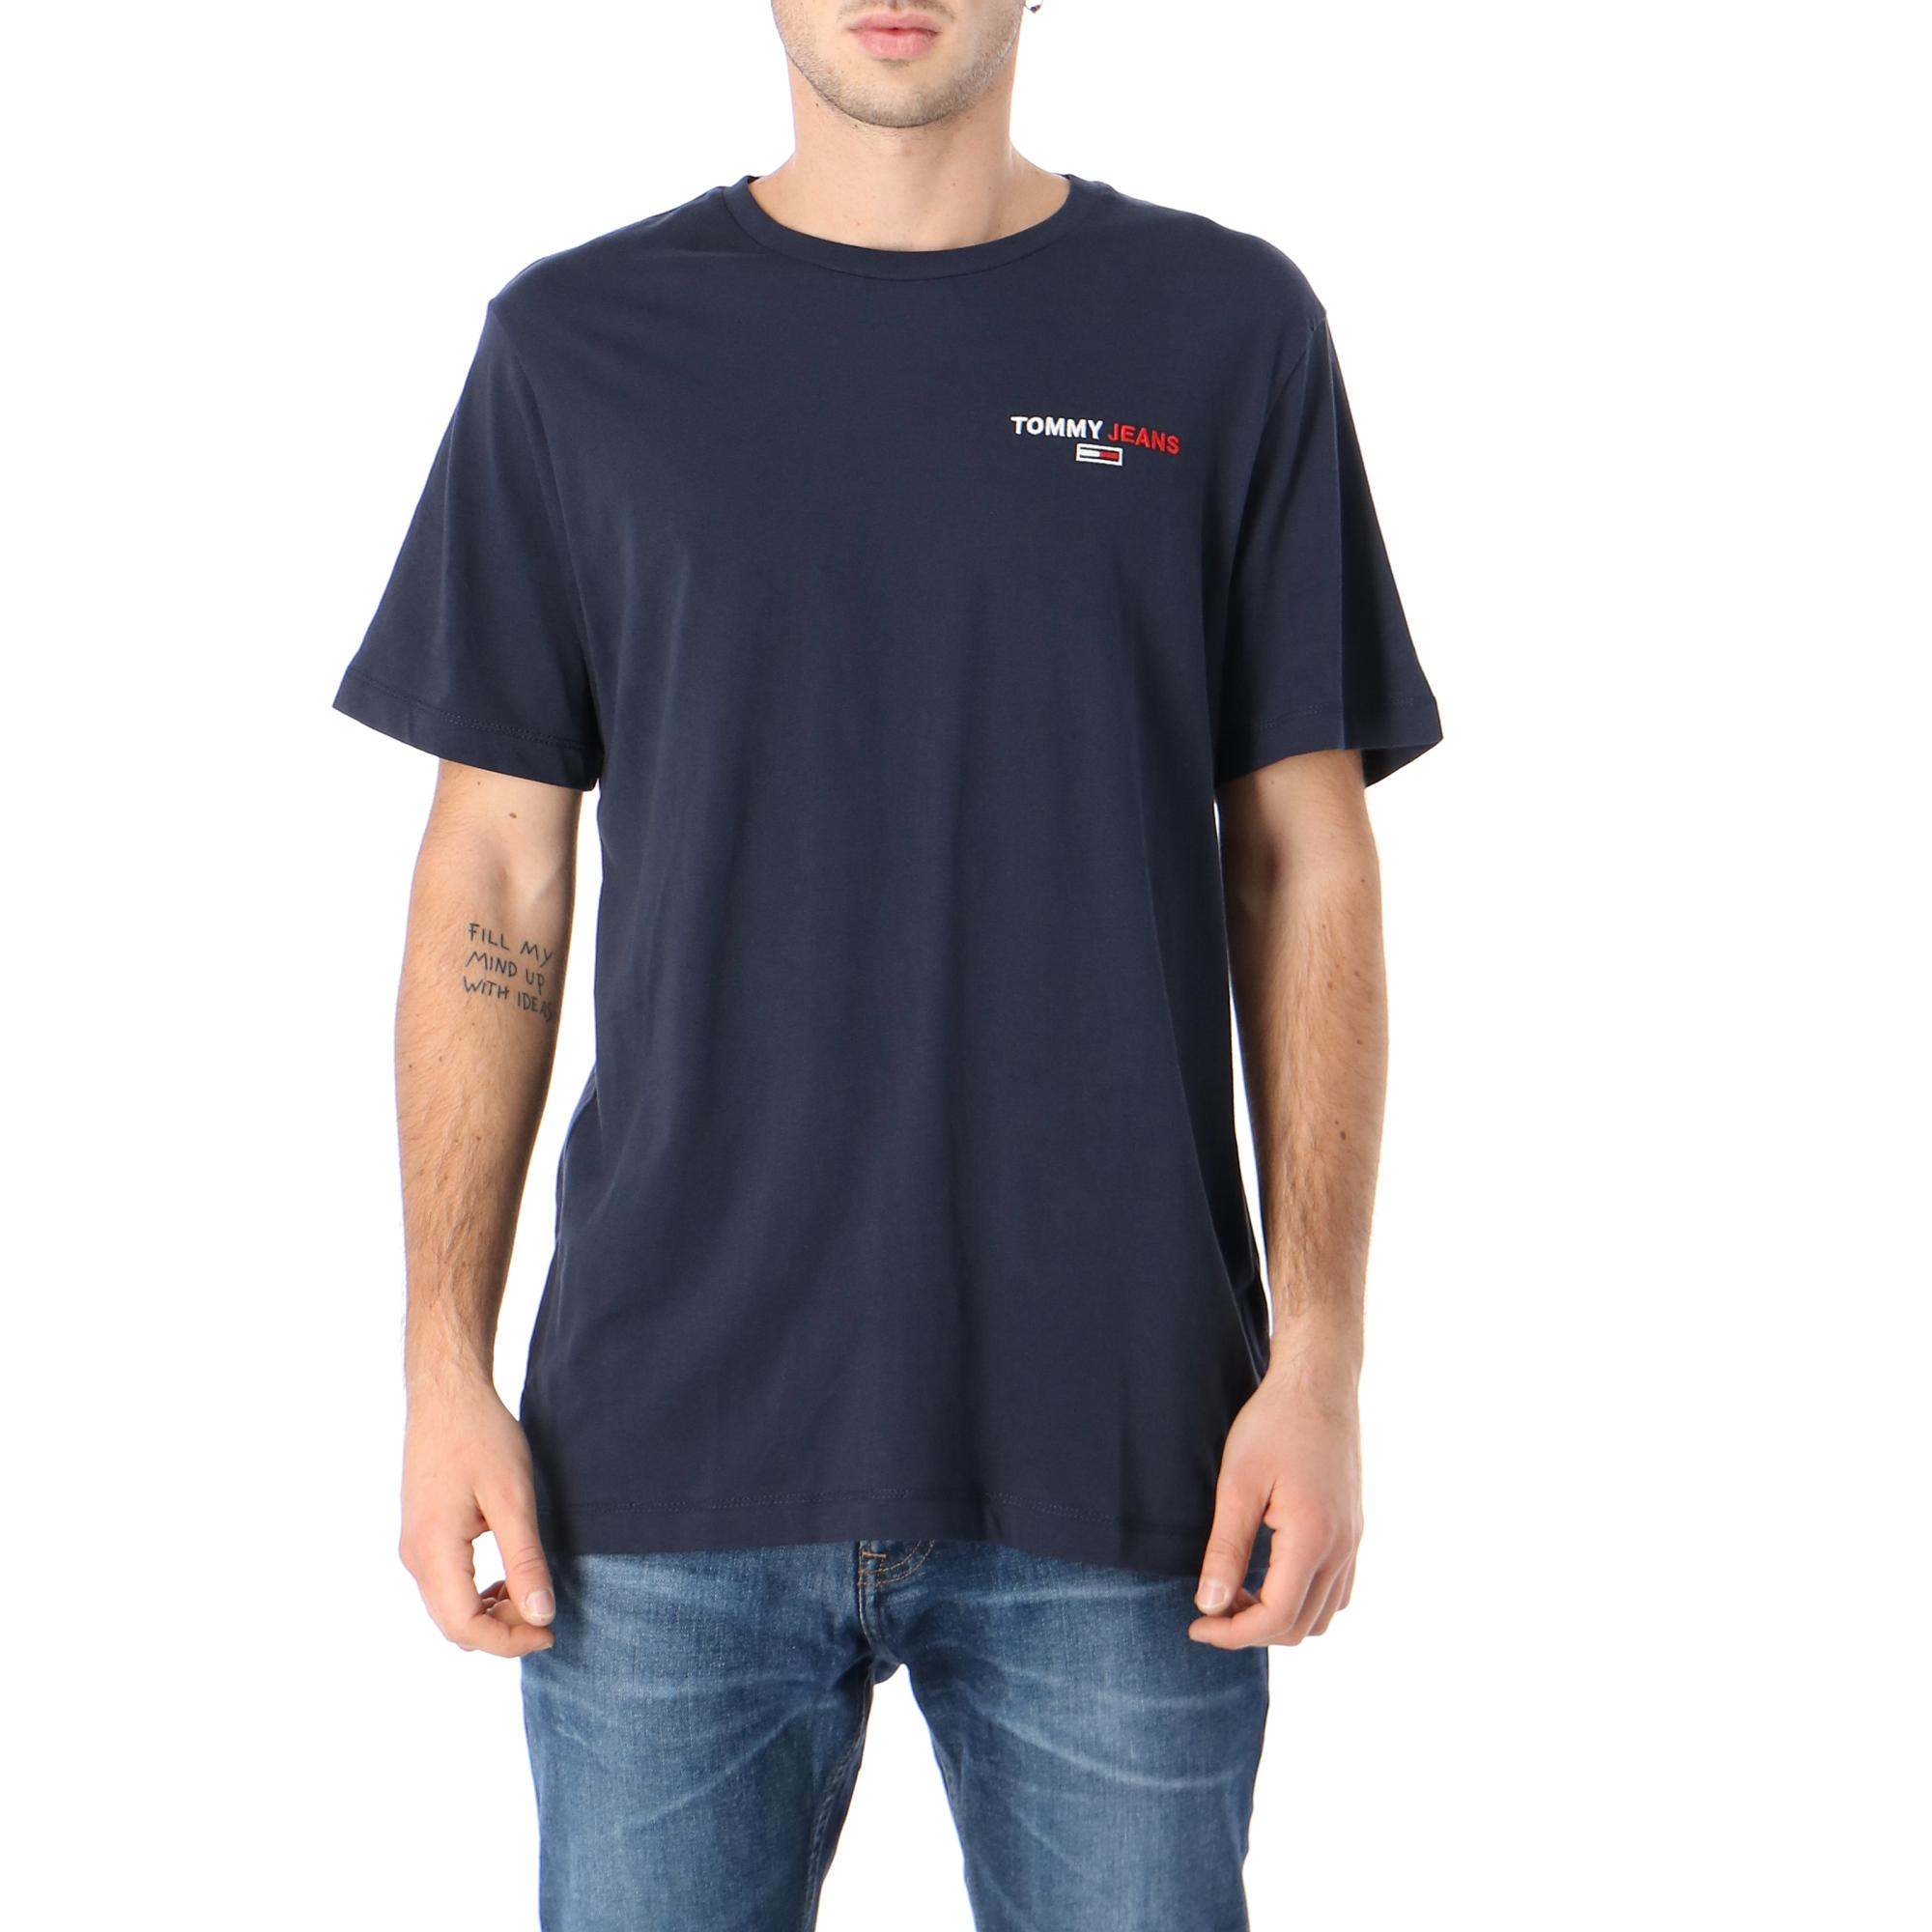 Tommy Hilfiger Tjm Ches Corp Tee Twilight navy